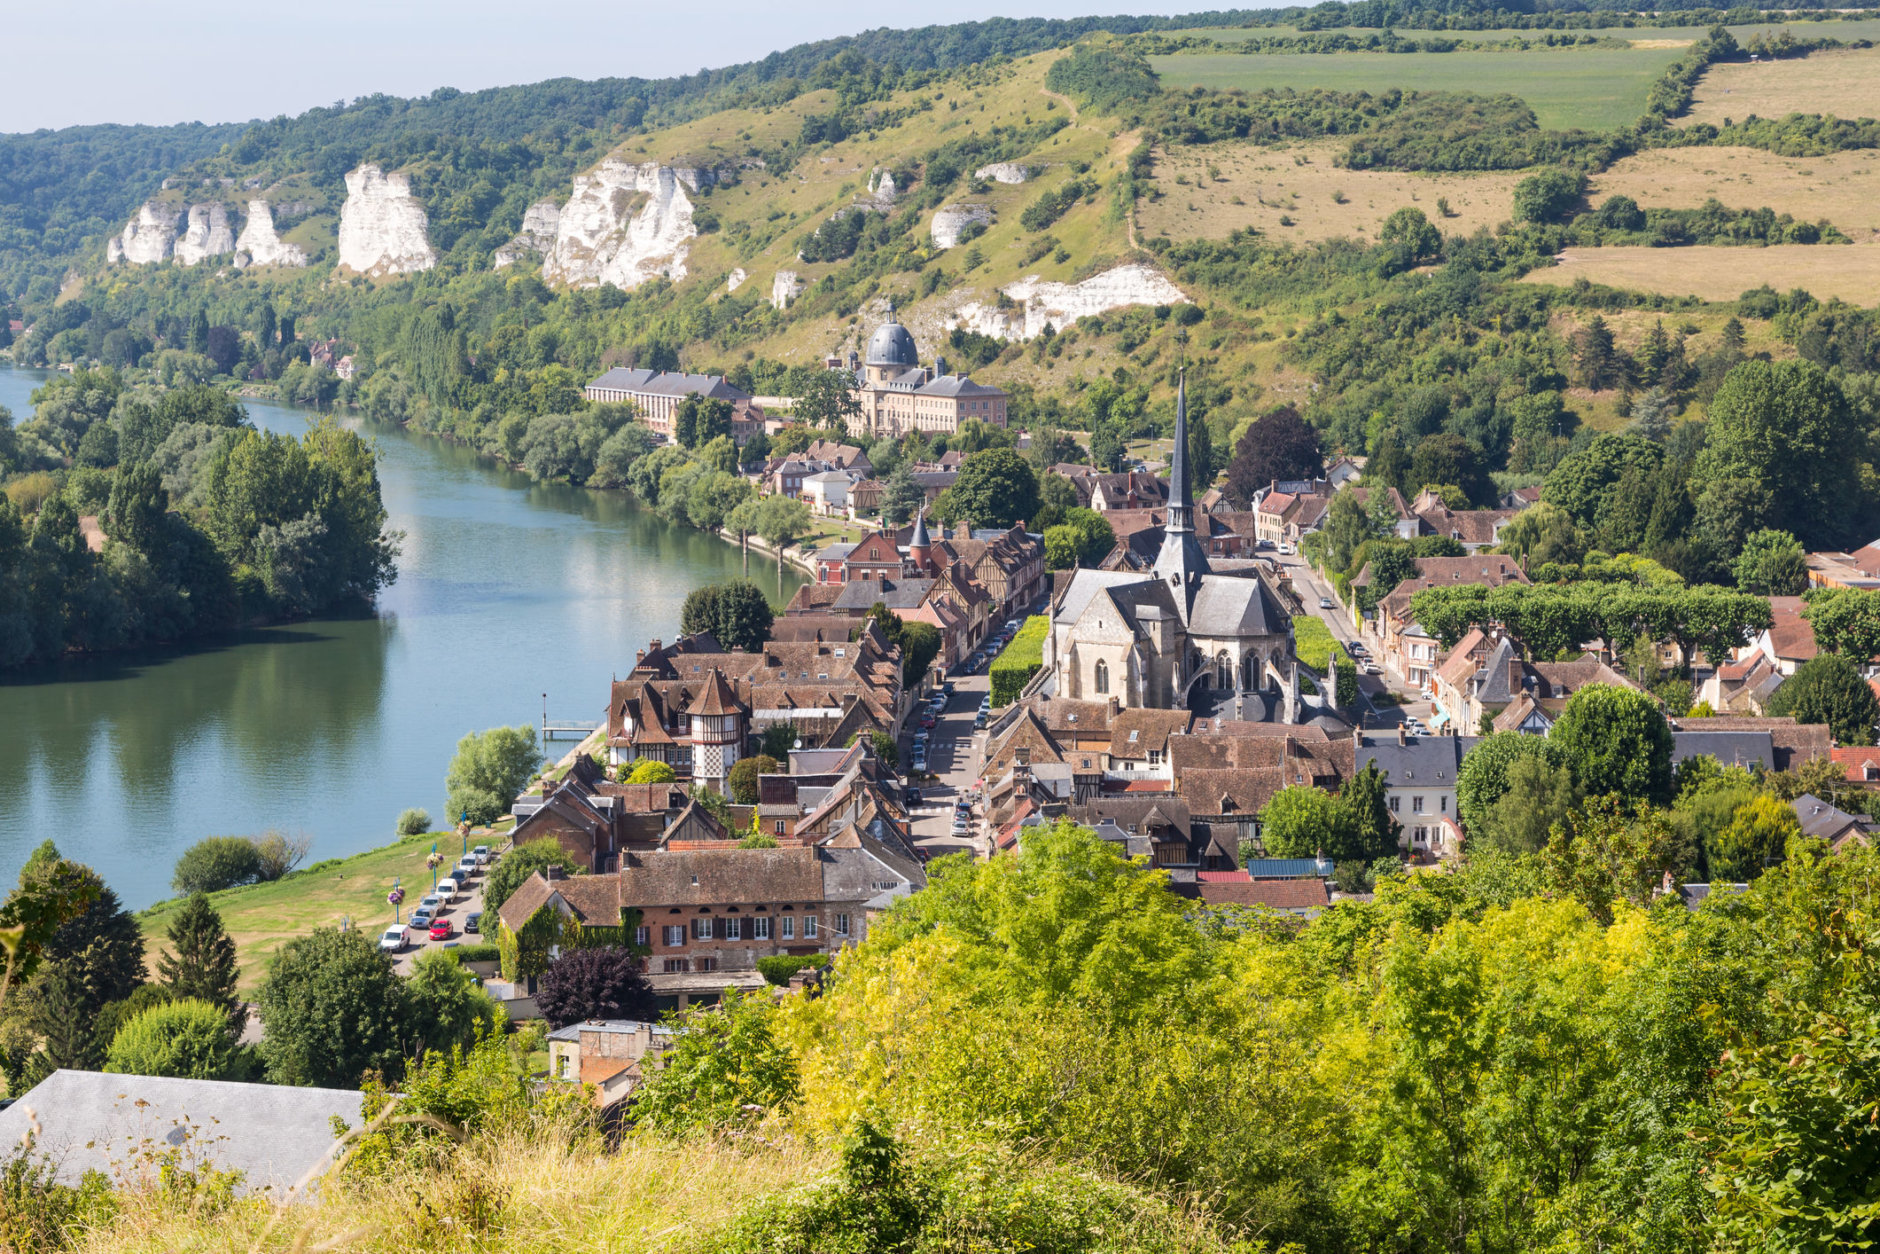 View on Les Andelys next to the river Seine seen from castle gaillard in the region Normandie, France. (Getty Images/iStockphoto/kyrien)